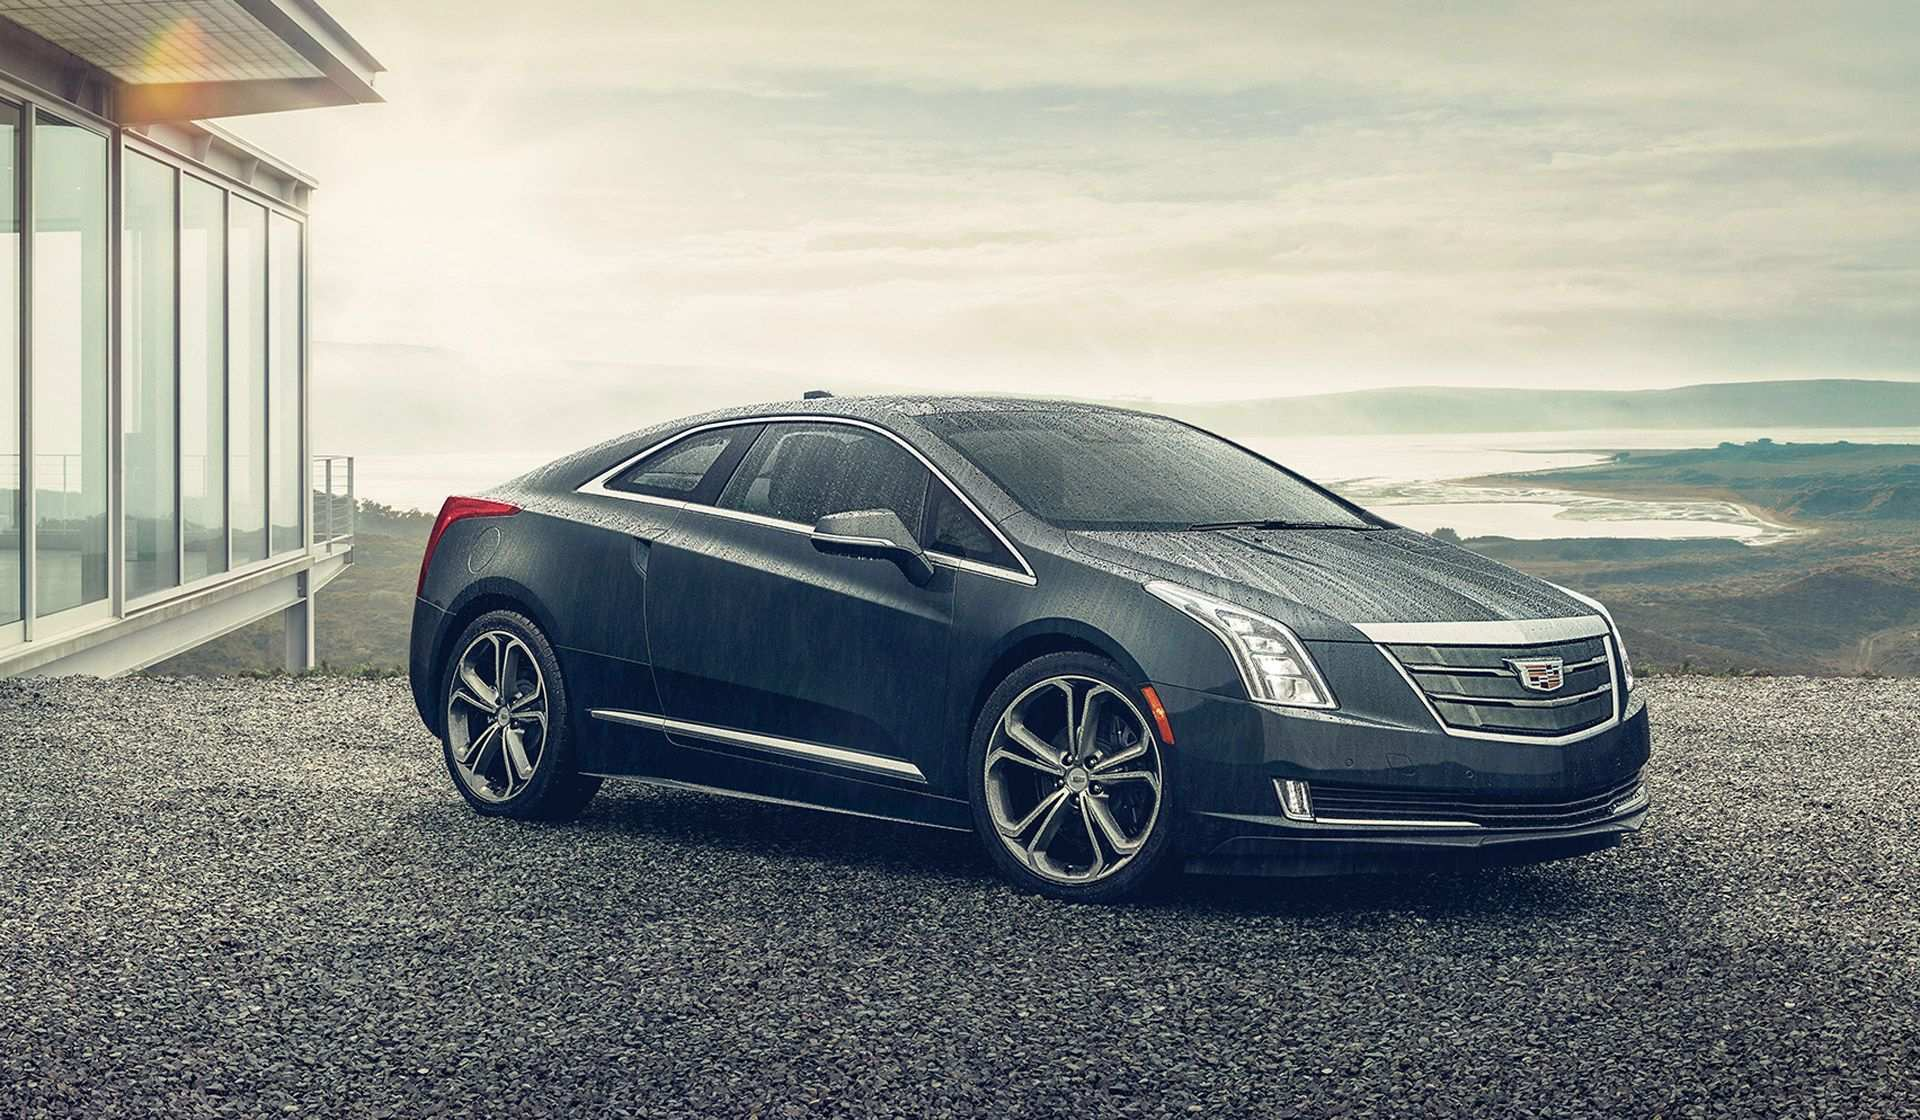 16 Gallery of 2020 Cadillac ELR S History for 2020 Cadillac ELR S